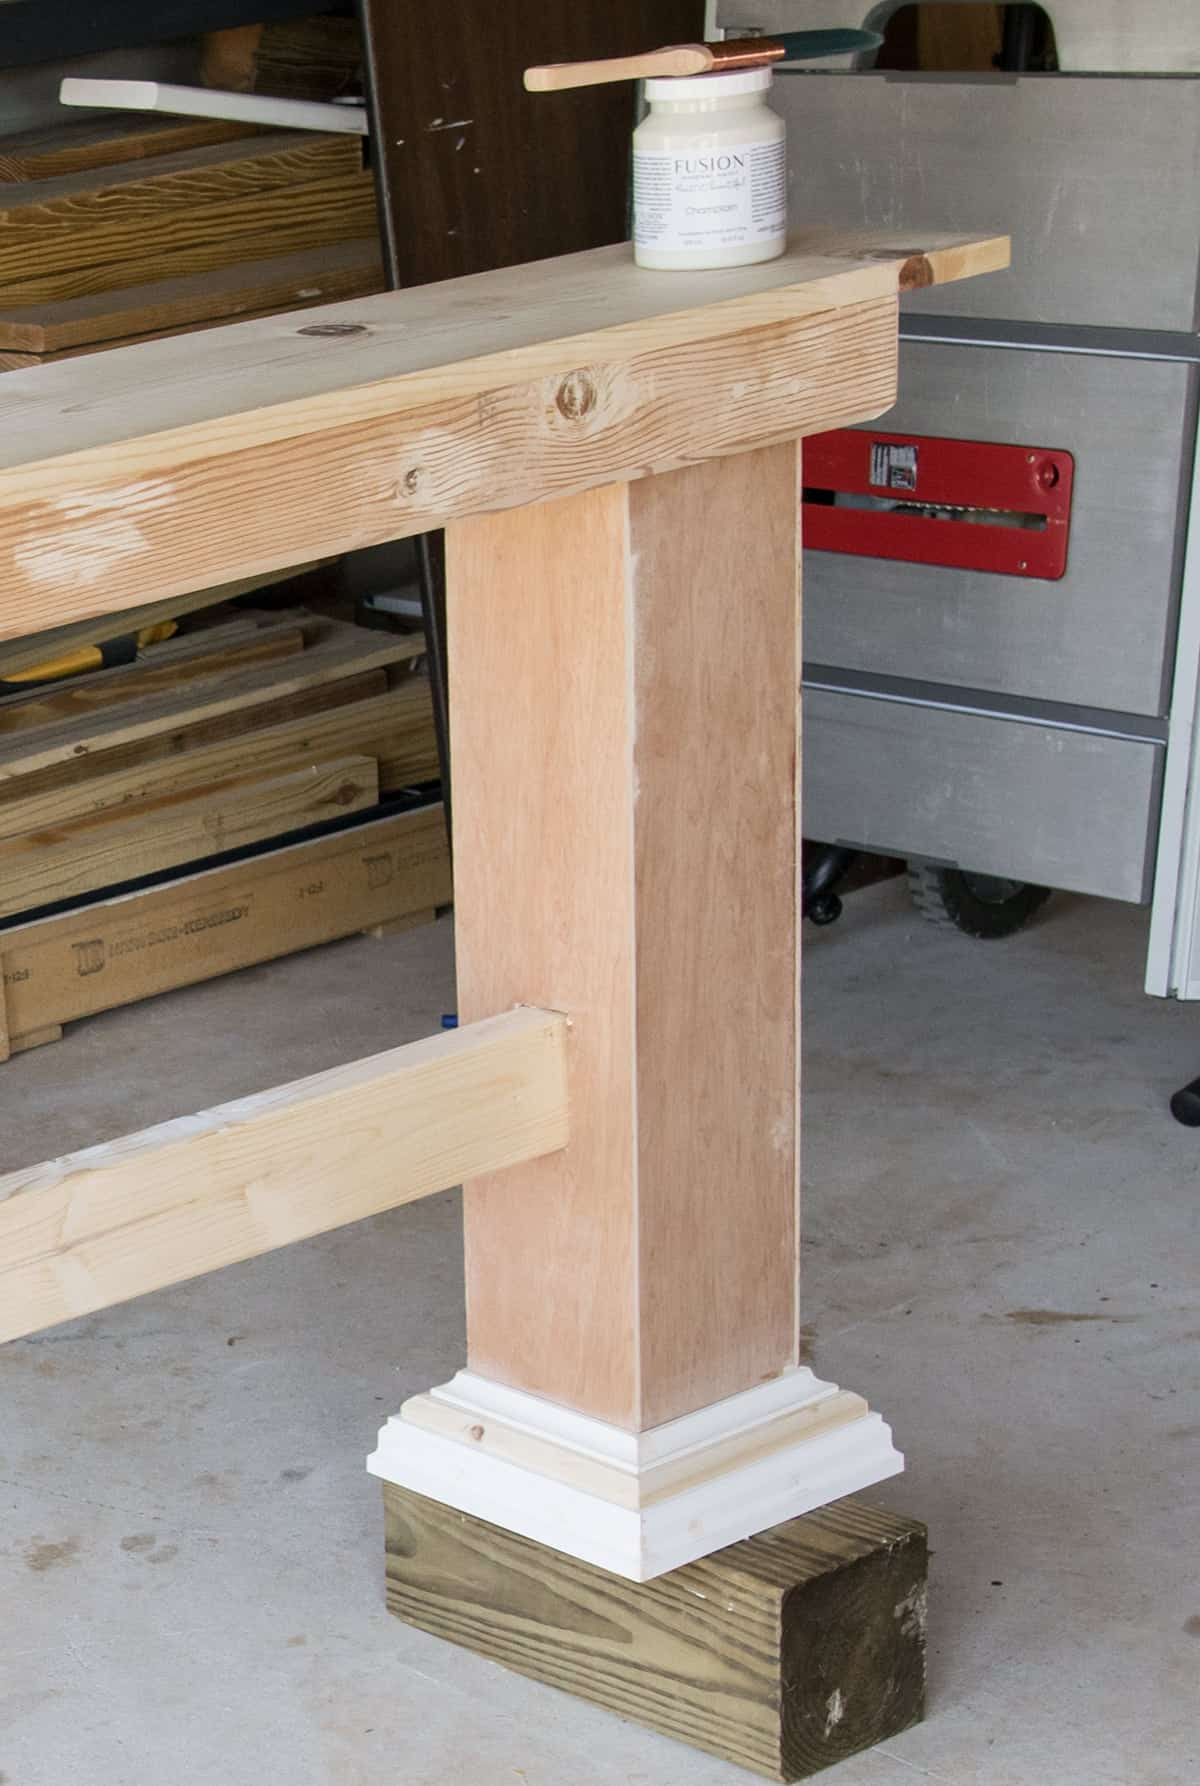 Adding a 10 inch poplar board to top of DIY console table